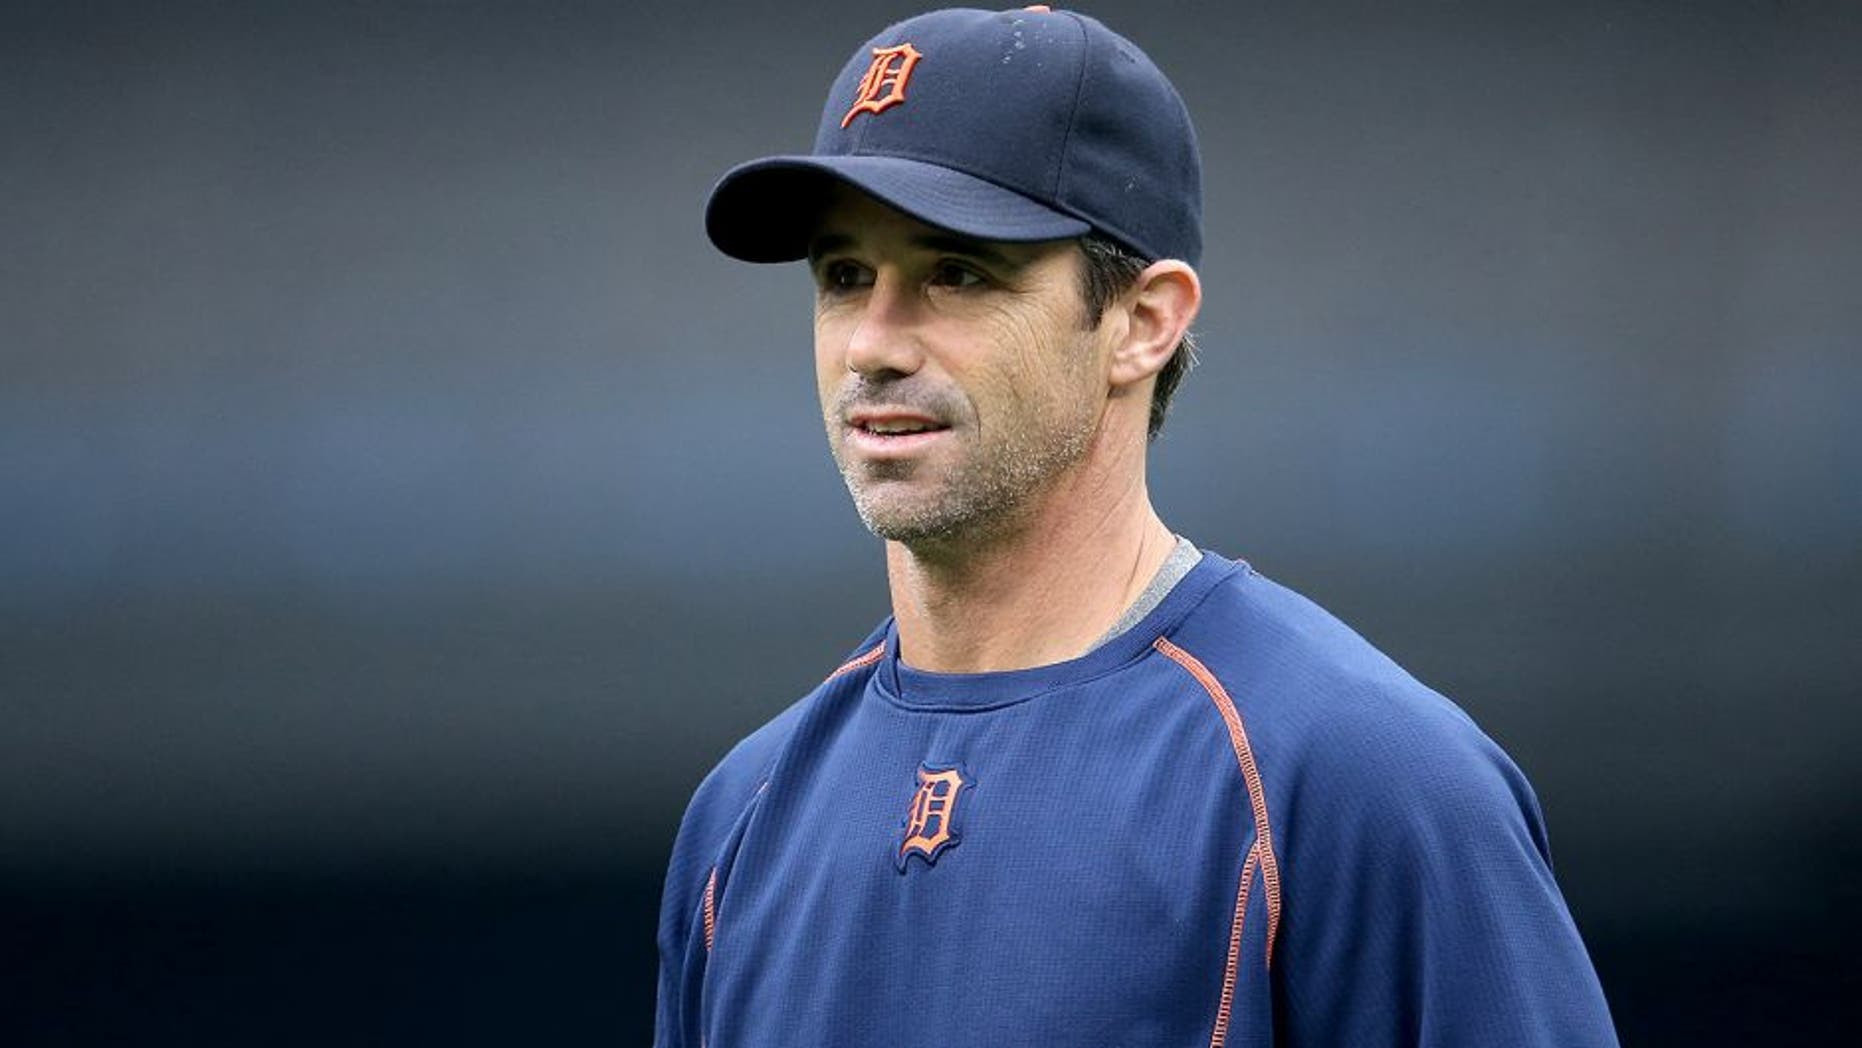 TORONTO, CANADA - AUGUST 29: Manager Brad Ausmus #7 of the Detroit Tigers during batting practice before the start of MLB game action against the Toronto Blue Jays on August 29, 2015 at Rogers Centre in Toronto, Ontario, Canada. (Photo by Tom Szczerbowski/Getty Images)